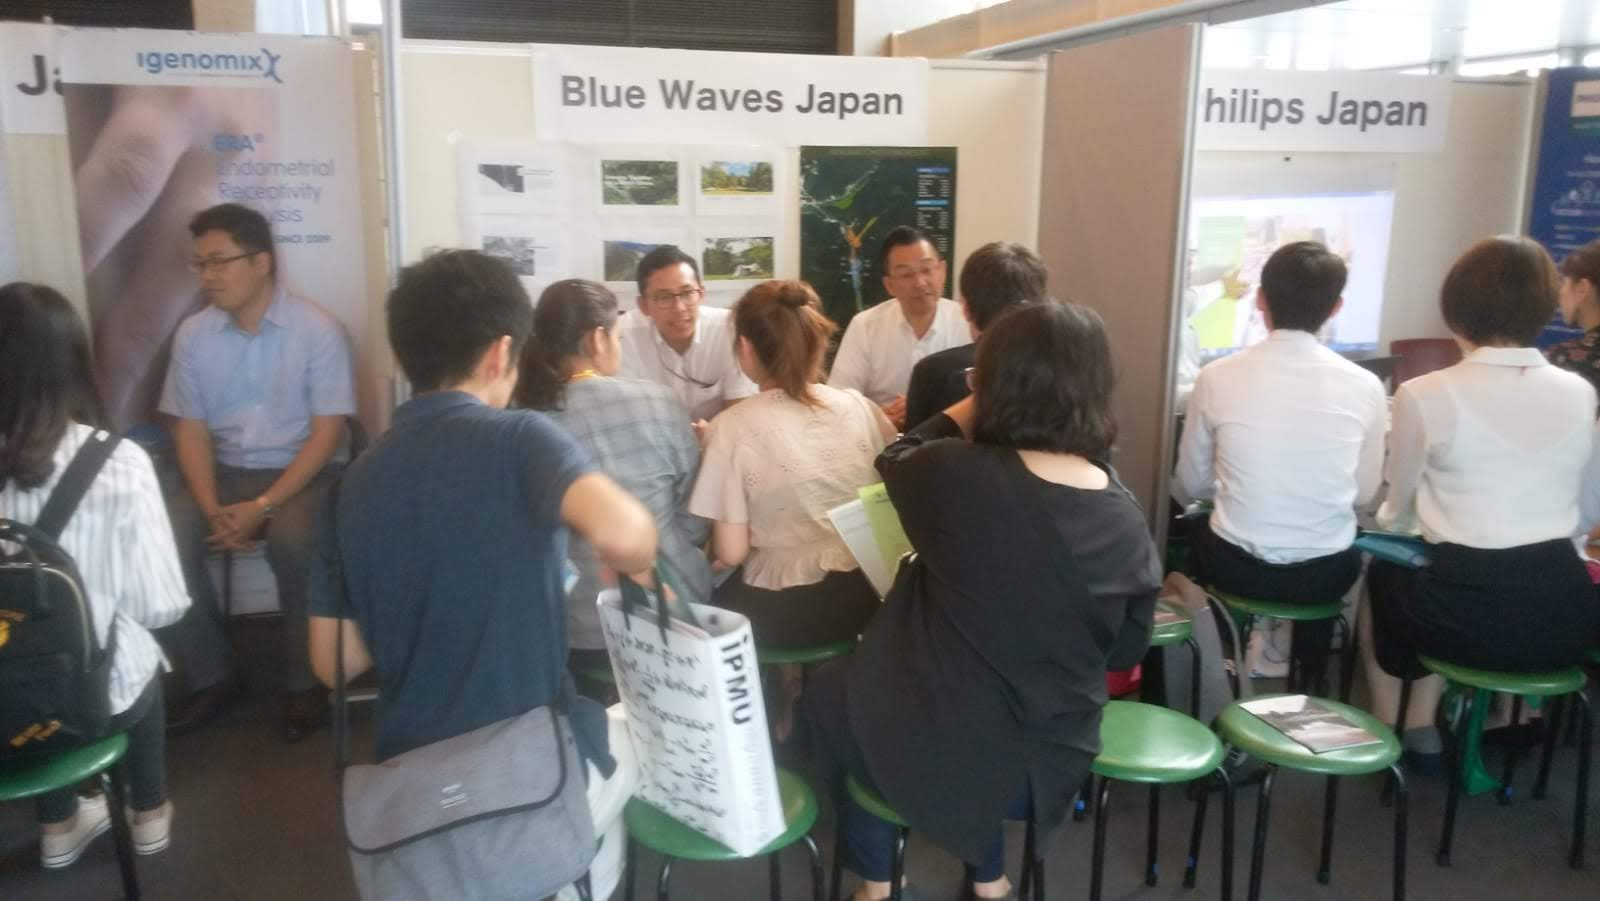 Don't be afraid to put yourself out there! This is when I represented Blue Waves Japan at Todai University